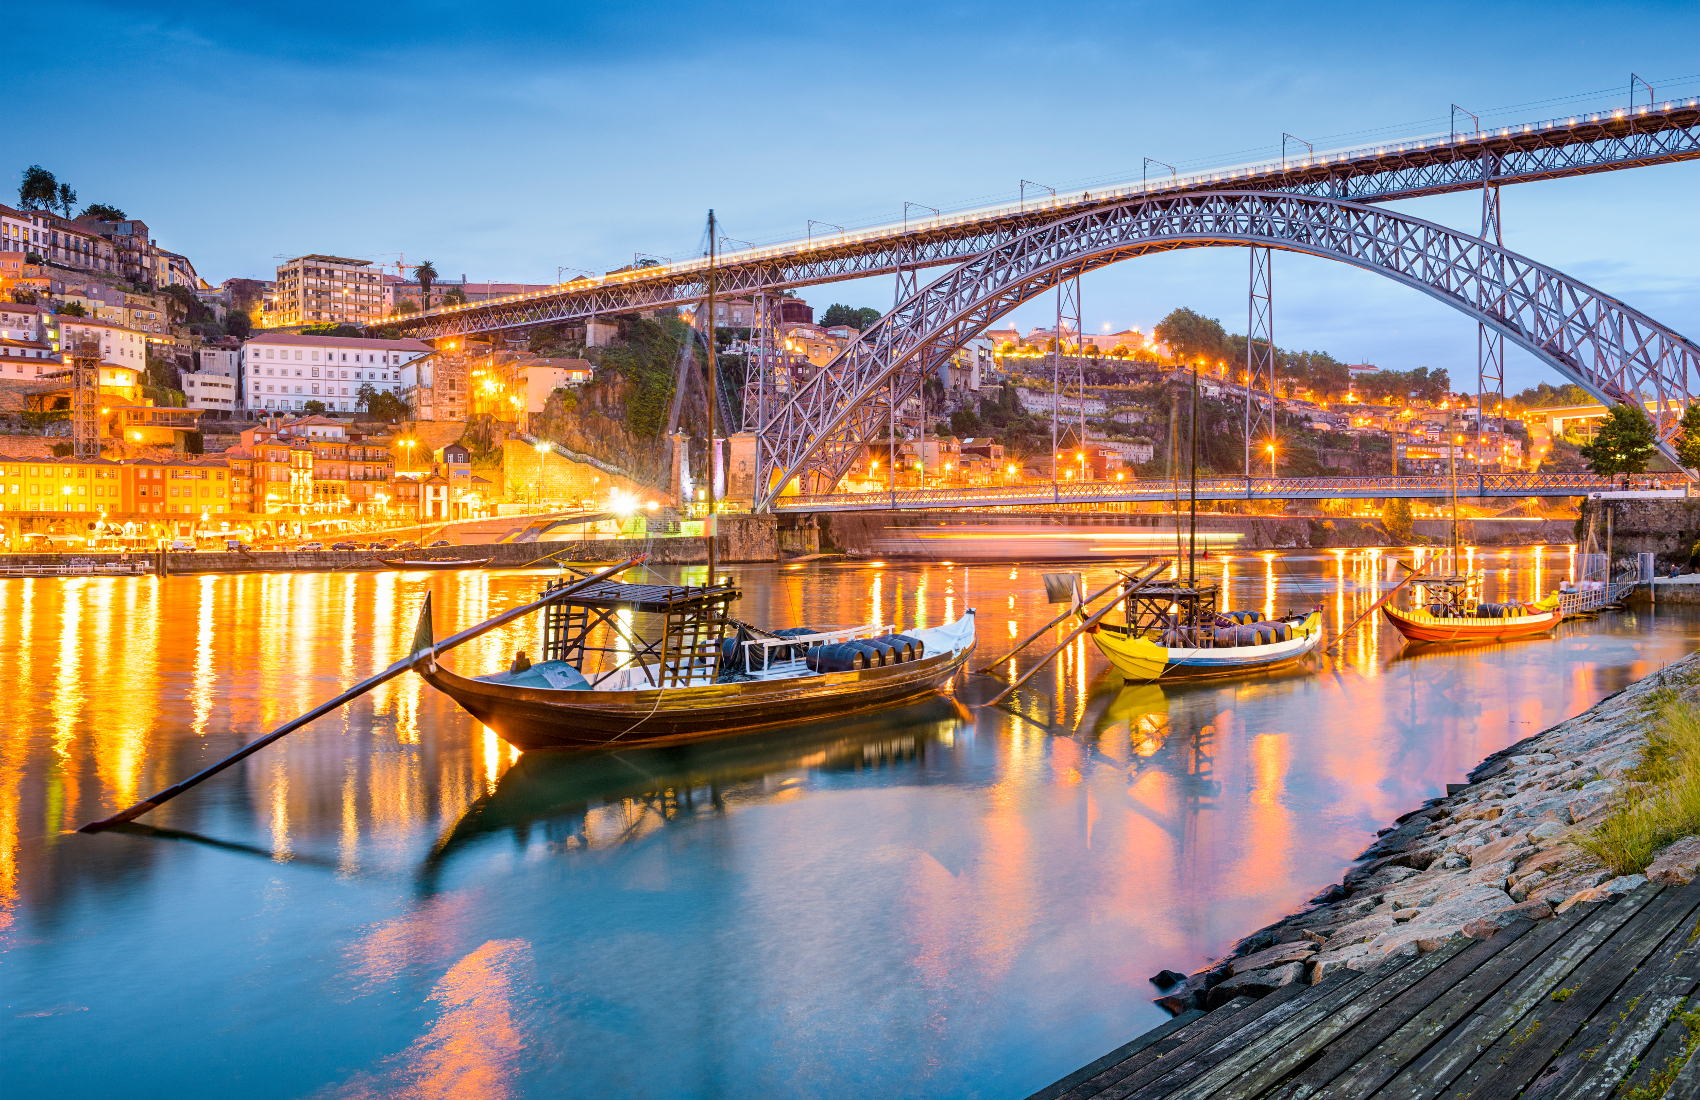 3 Reasons To Attend The Luxury Design & Craftsmanship Summit FEATURE Porto Portugal Cityscape 000051839122 XXXLarge 1